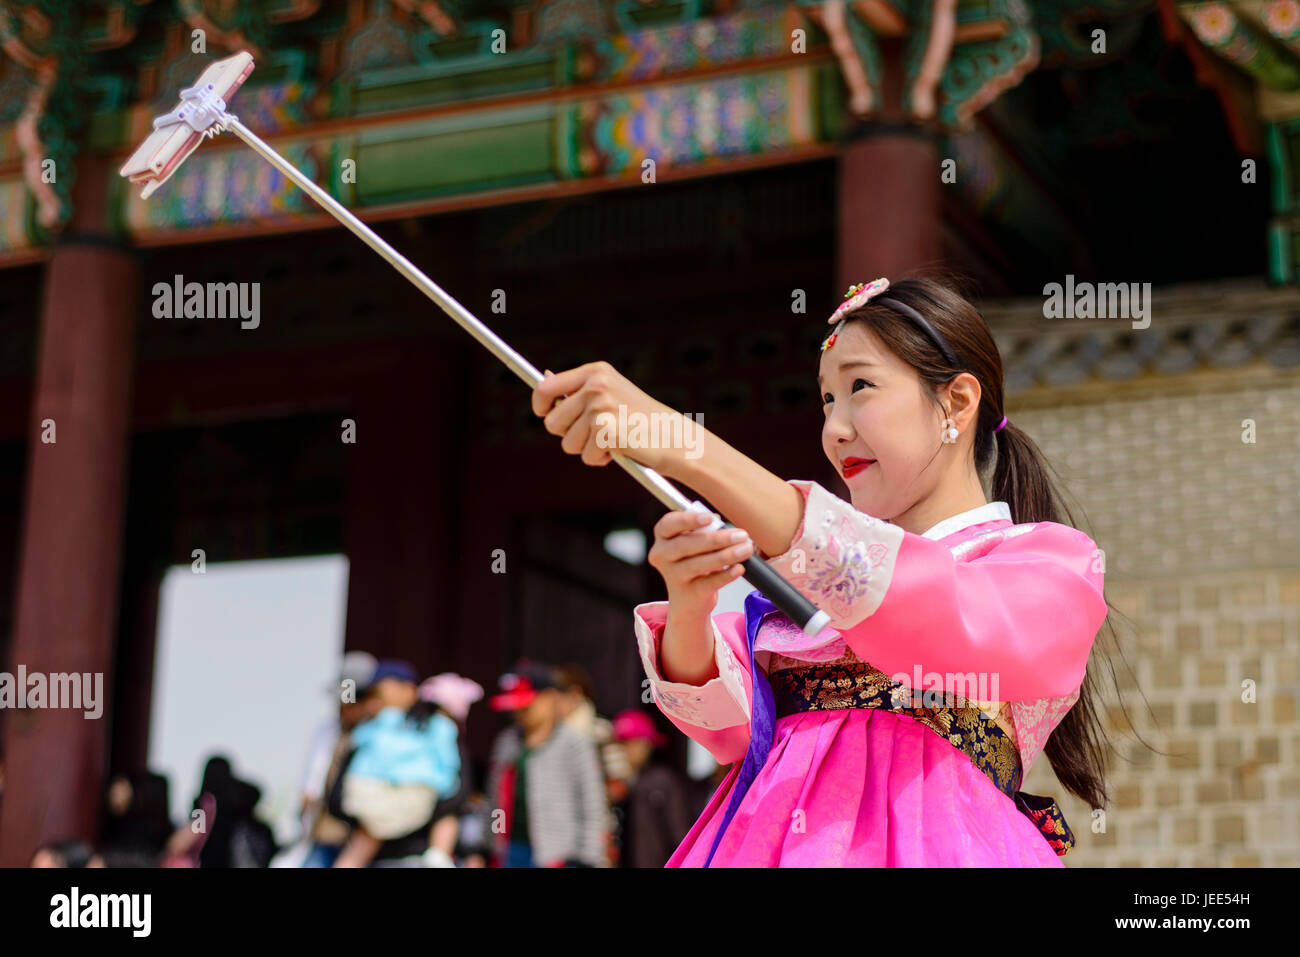 Wearing traditional hanbok around Seoul Royal Palaces - Stock Image